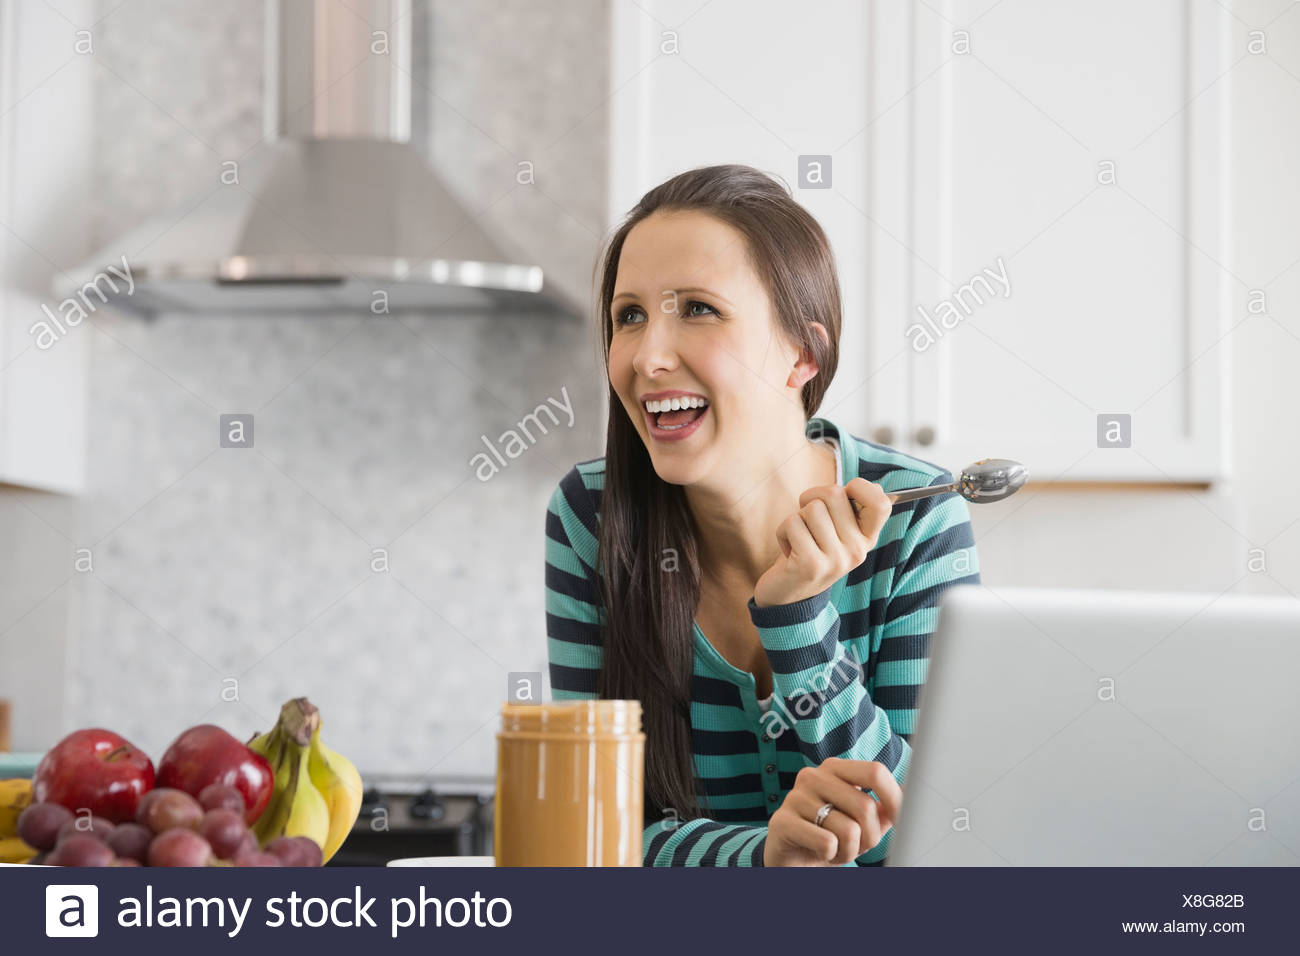 Pregnant woman with peanut butter in kitchen - Stock Image